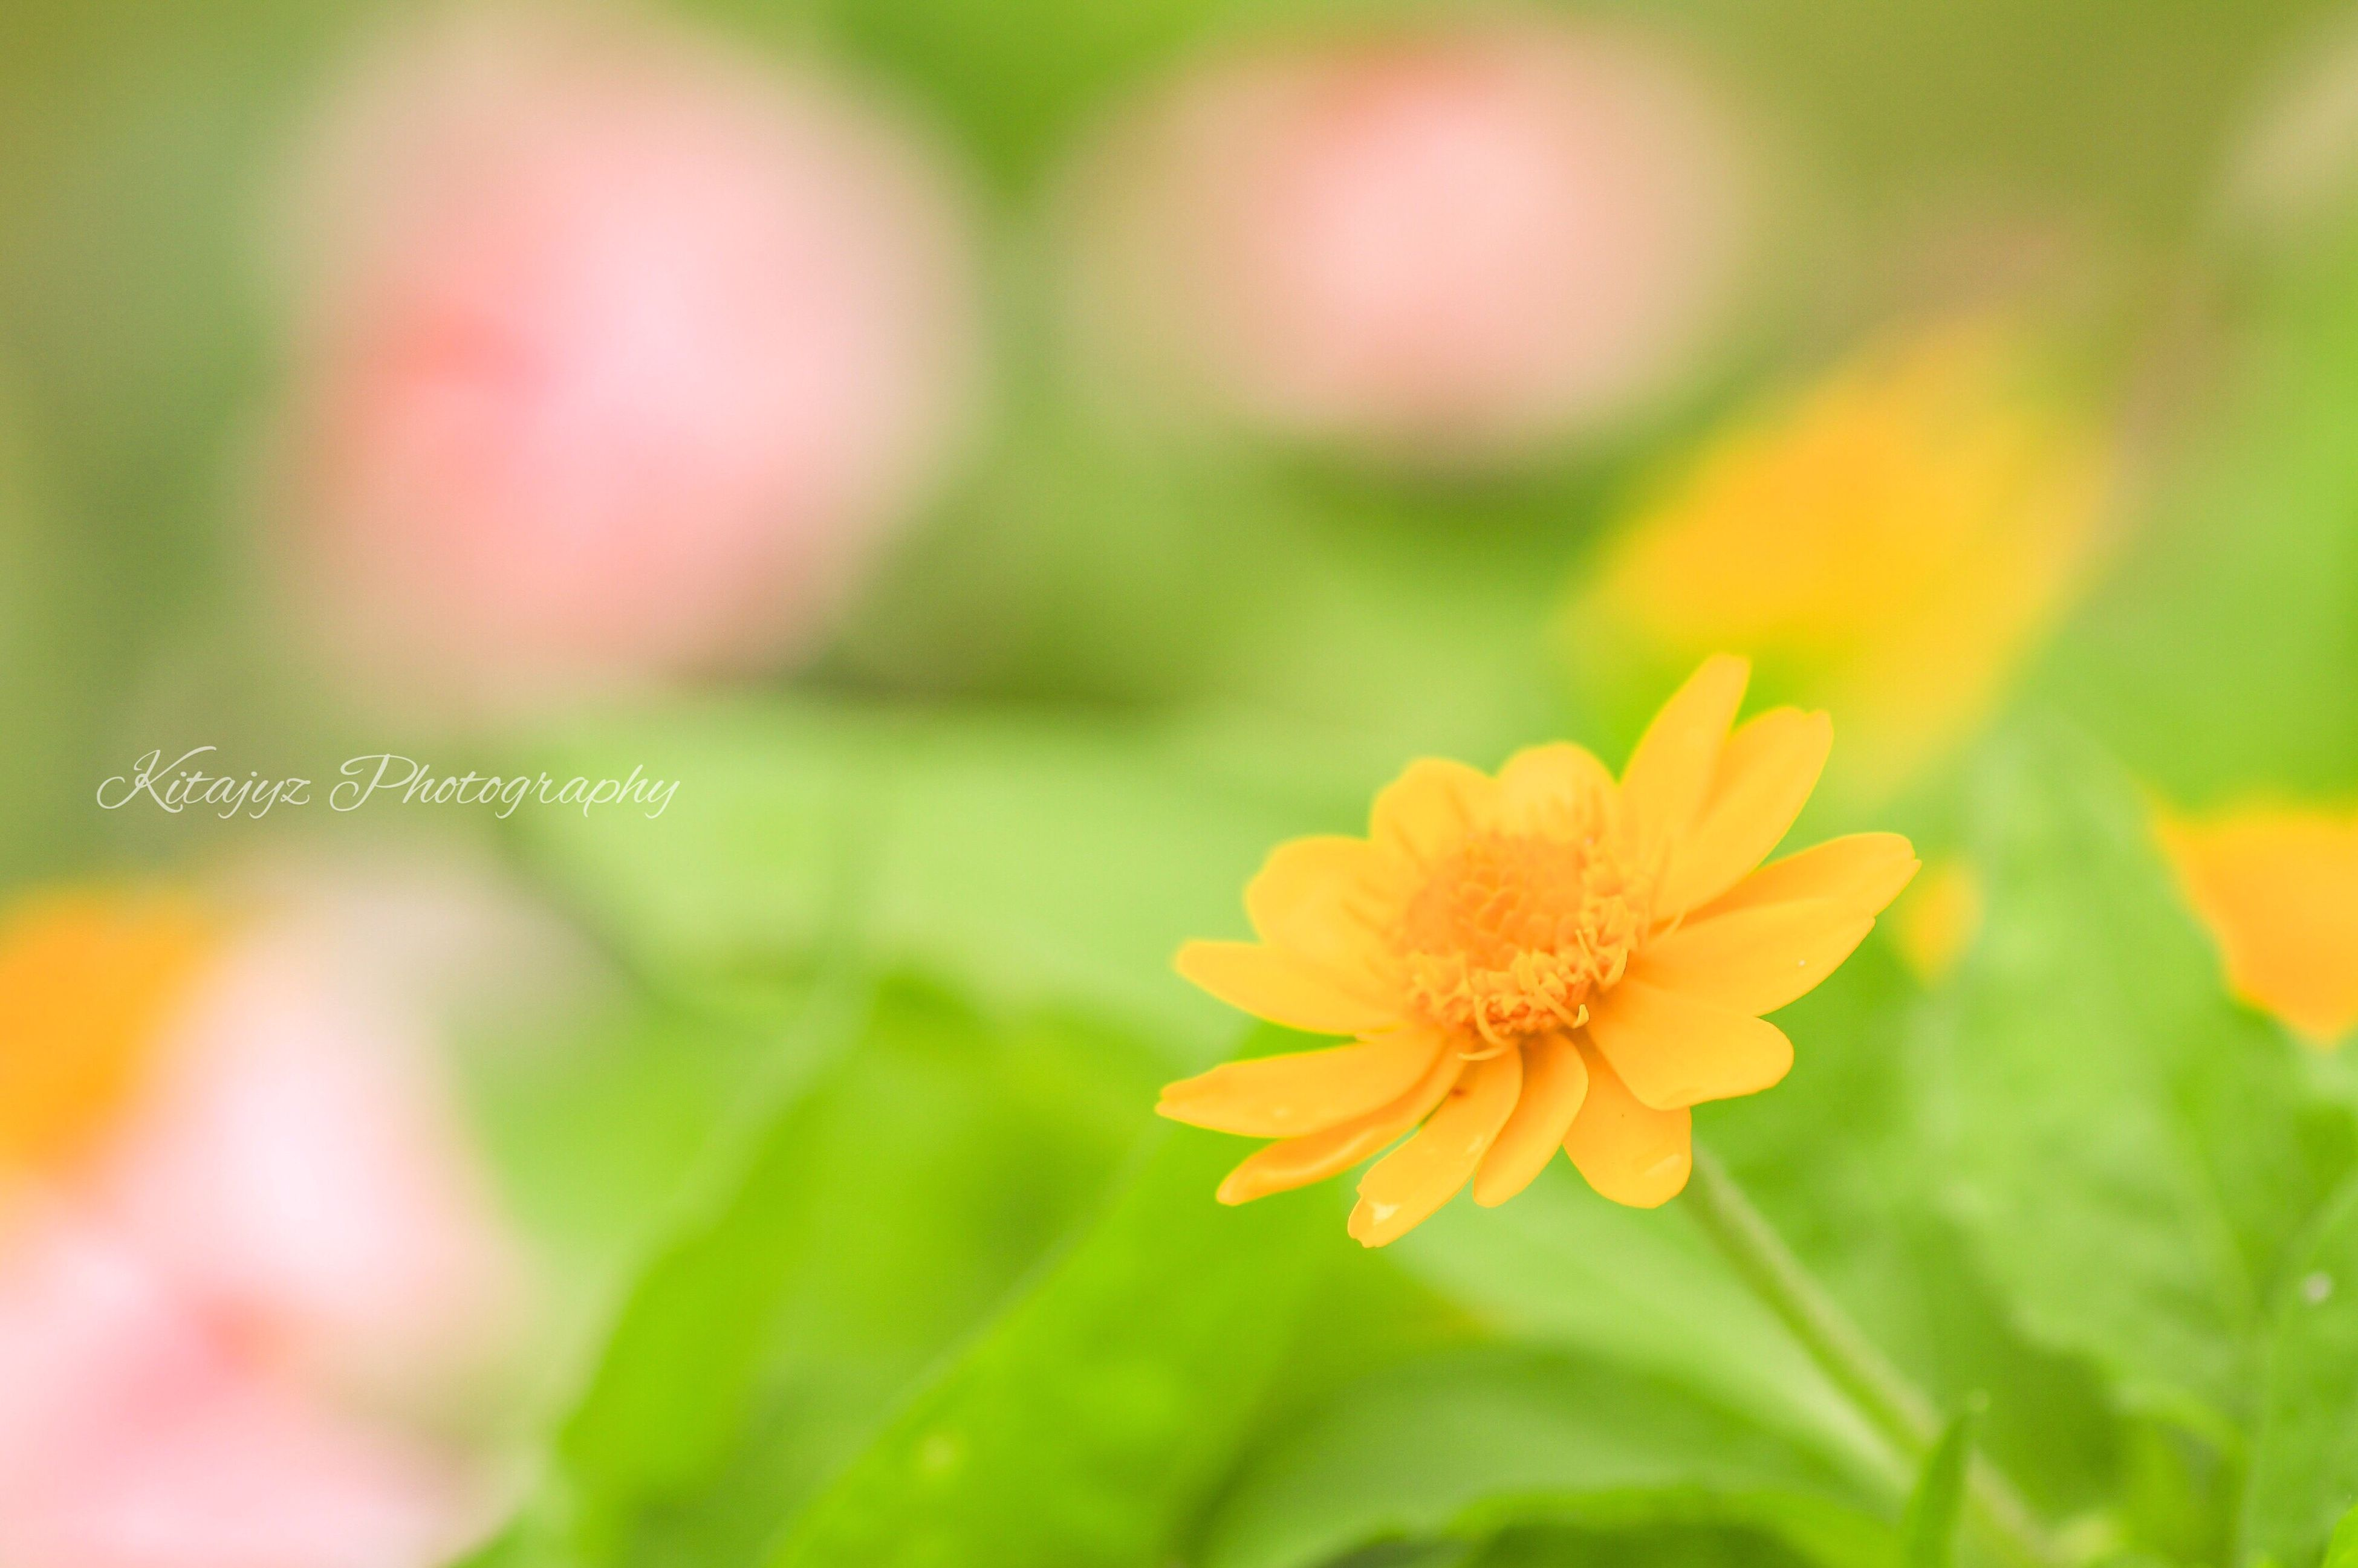 flower, petal, freshness, fragility, flower head, focus on foreground, growth, beauty in nature, close-up, yellow, blooming, nature, plant, selective focus, in bloom, pollen, park - man made space, day, outdoors, stem